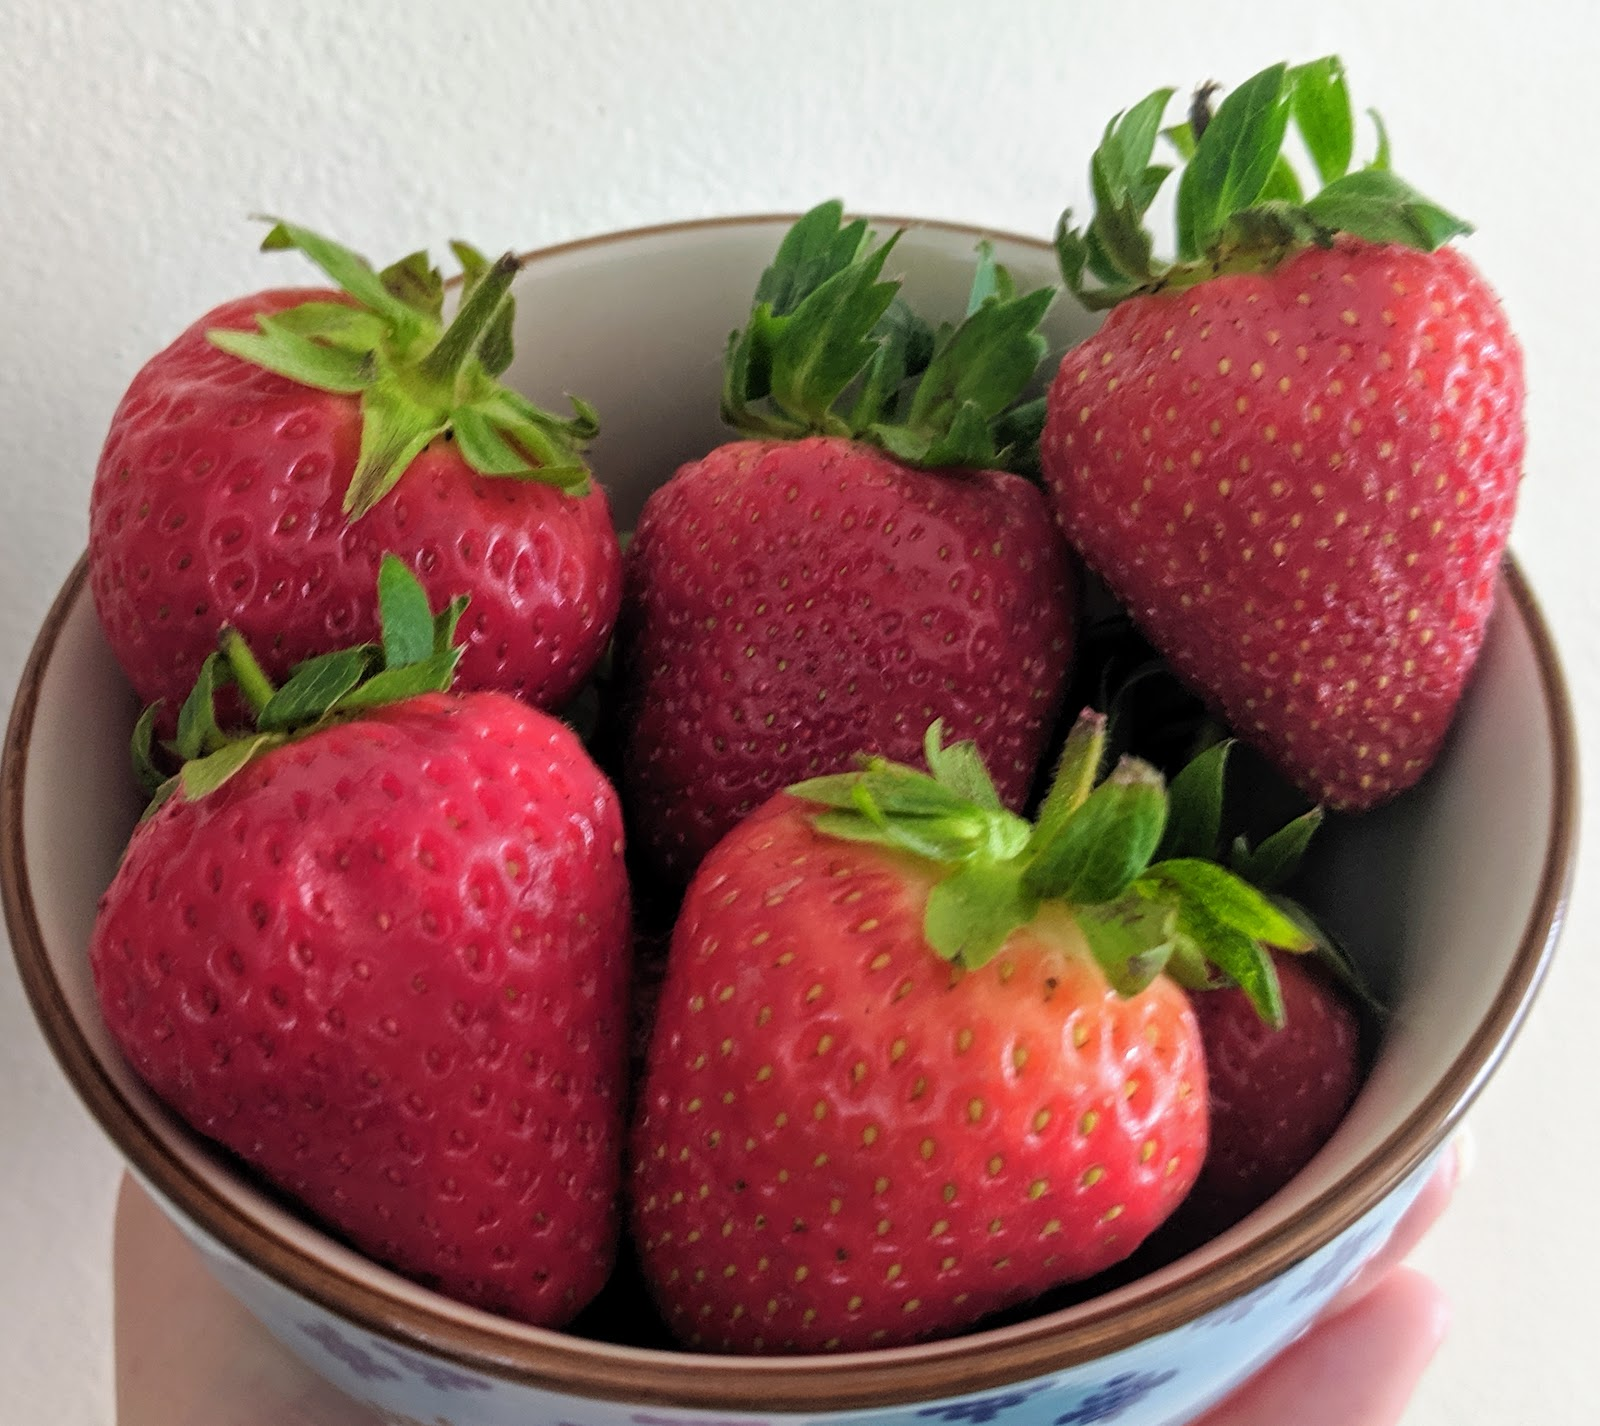 Elevate your next BBQ with these simple recipes - Scotty Brand Strawberries